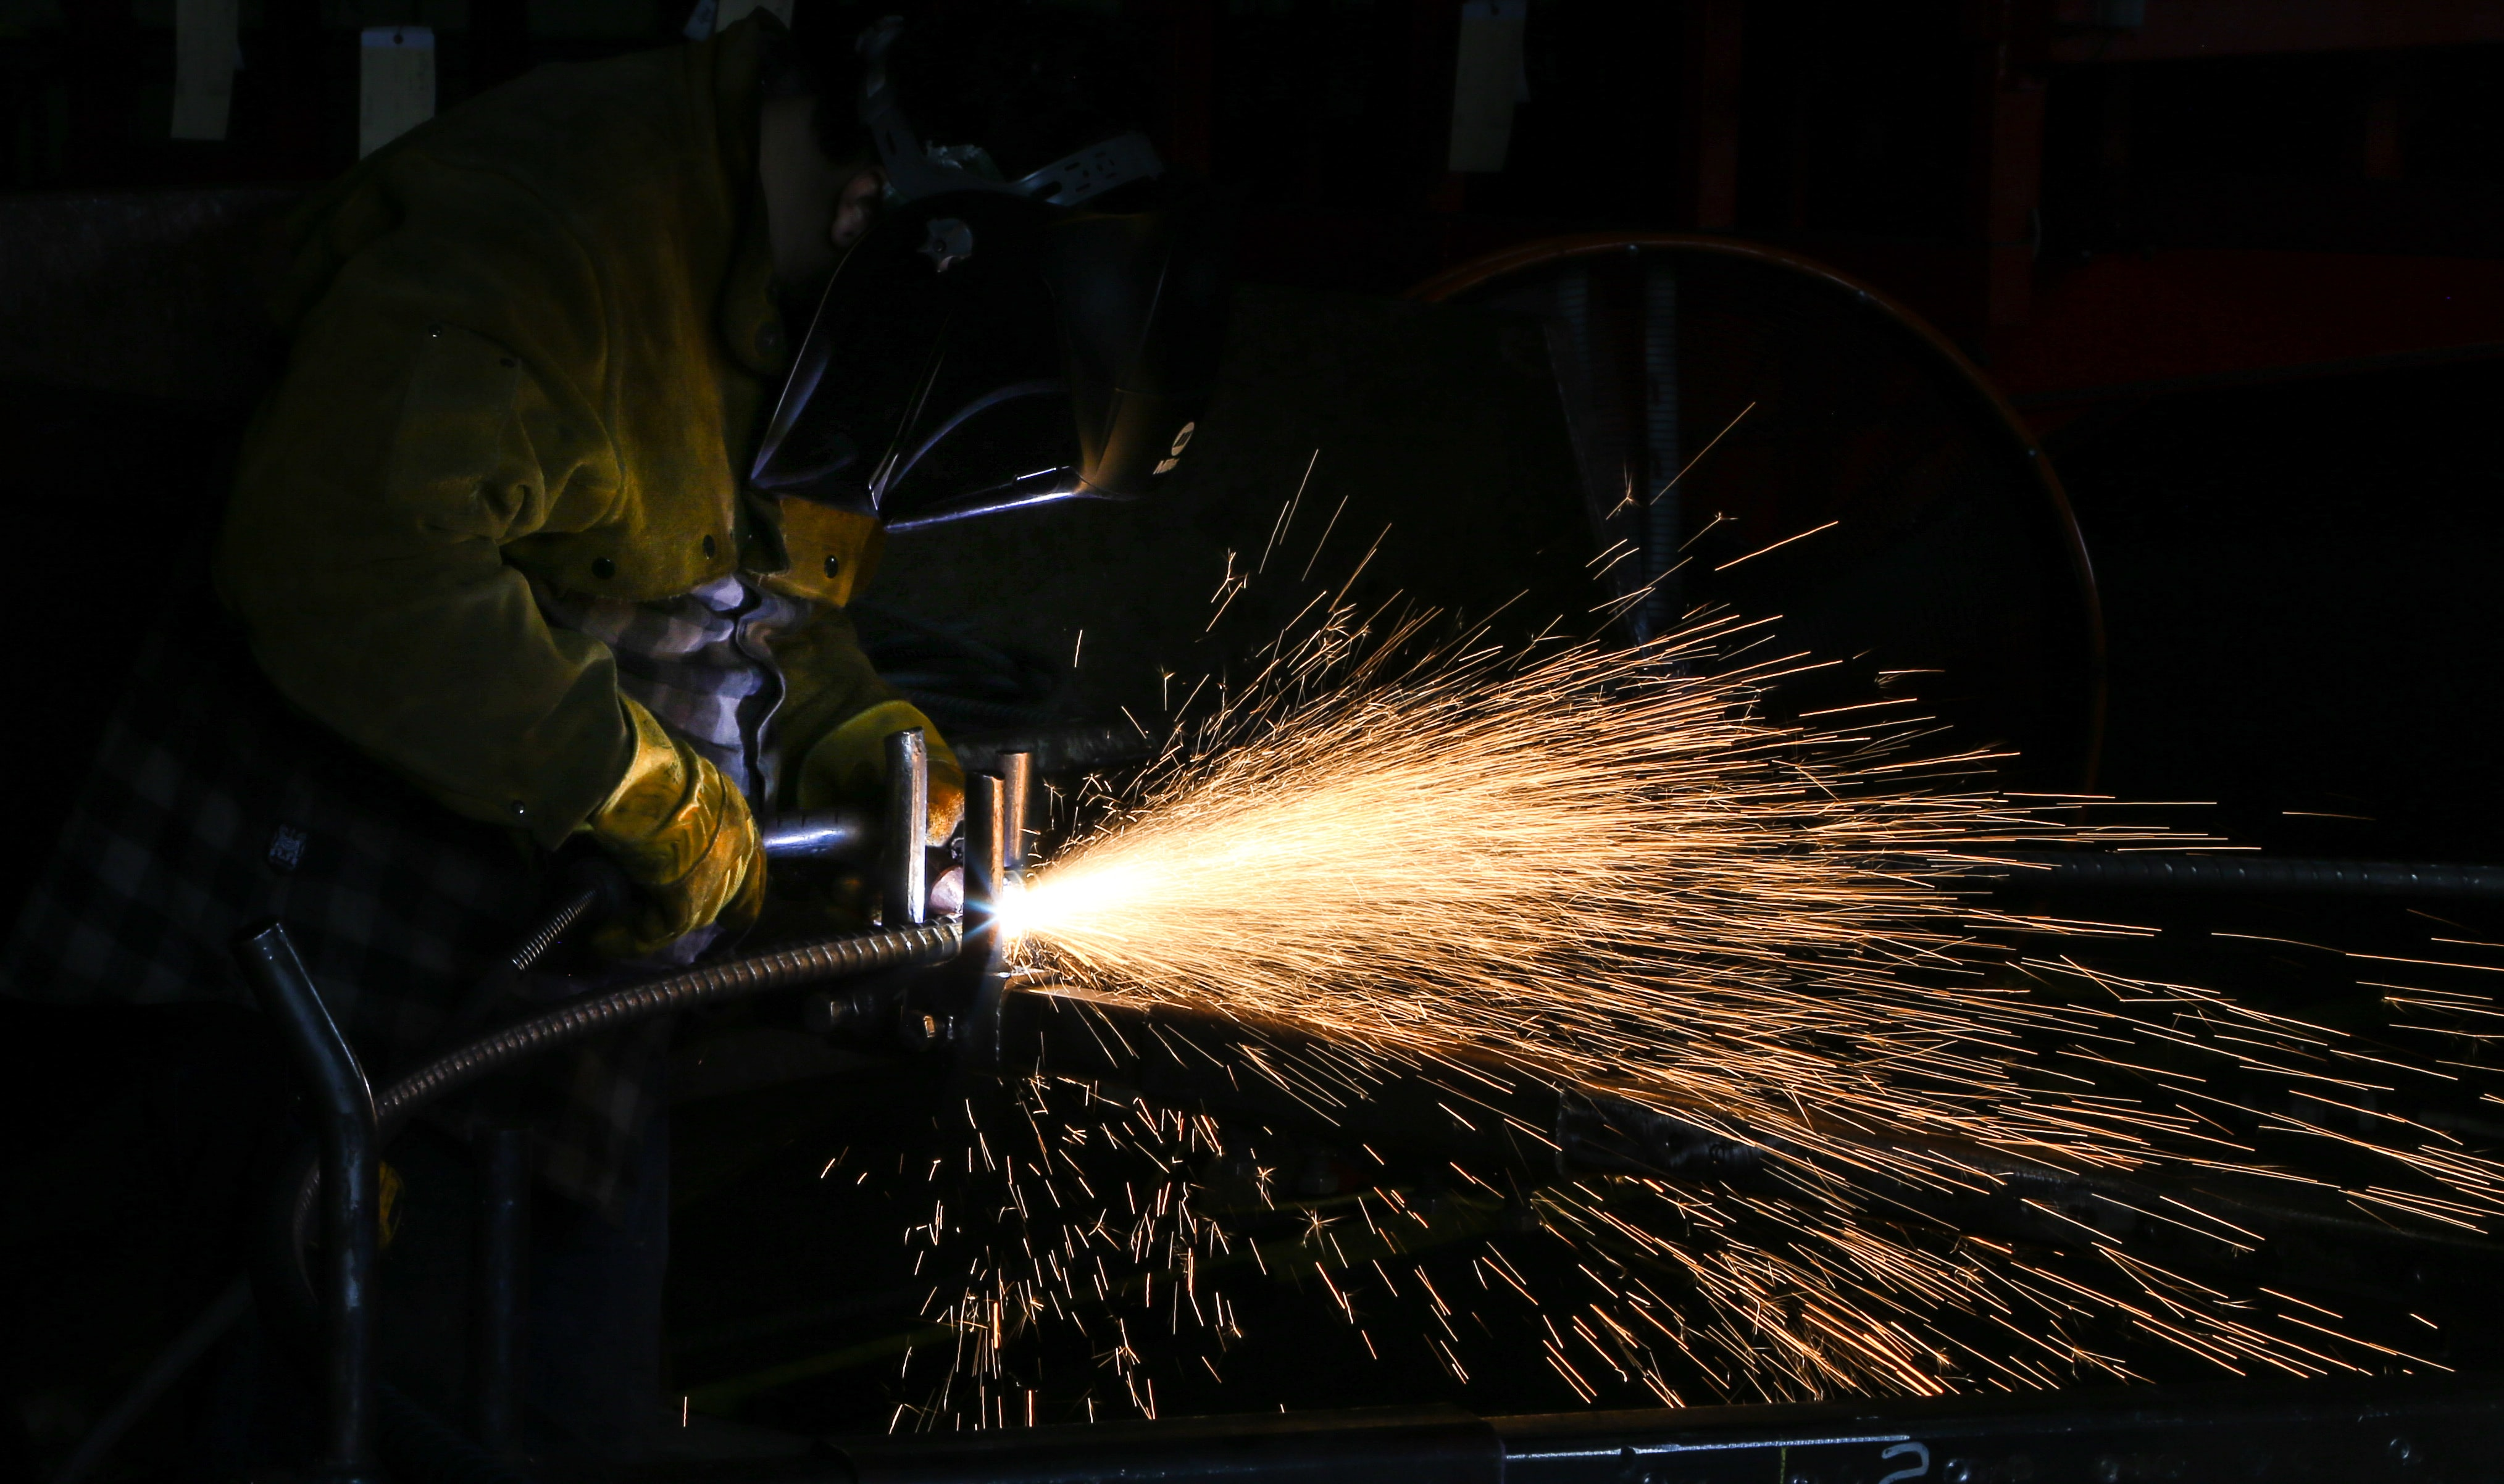 time lapse photography of welding man